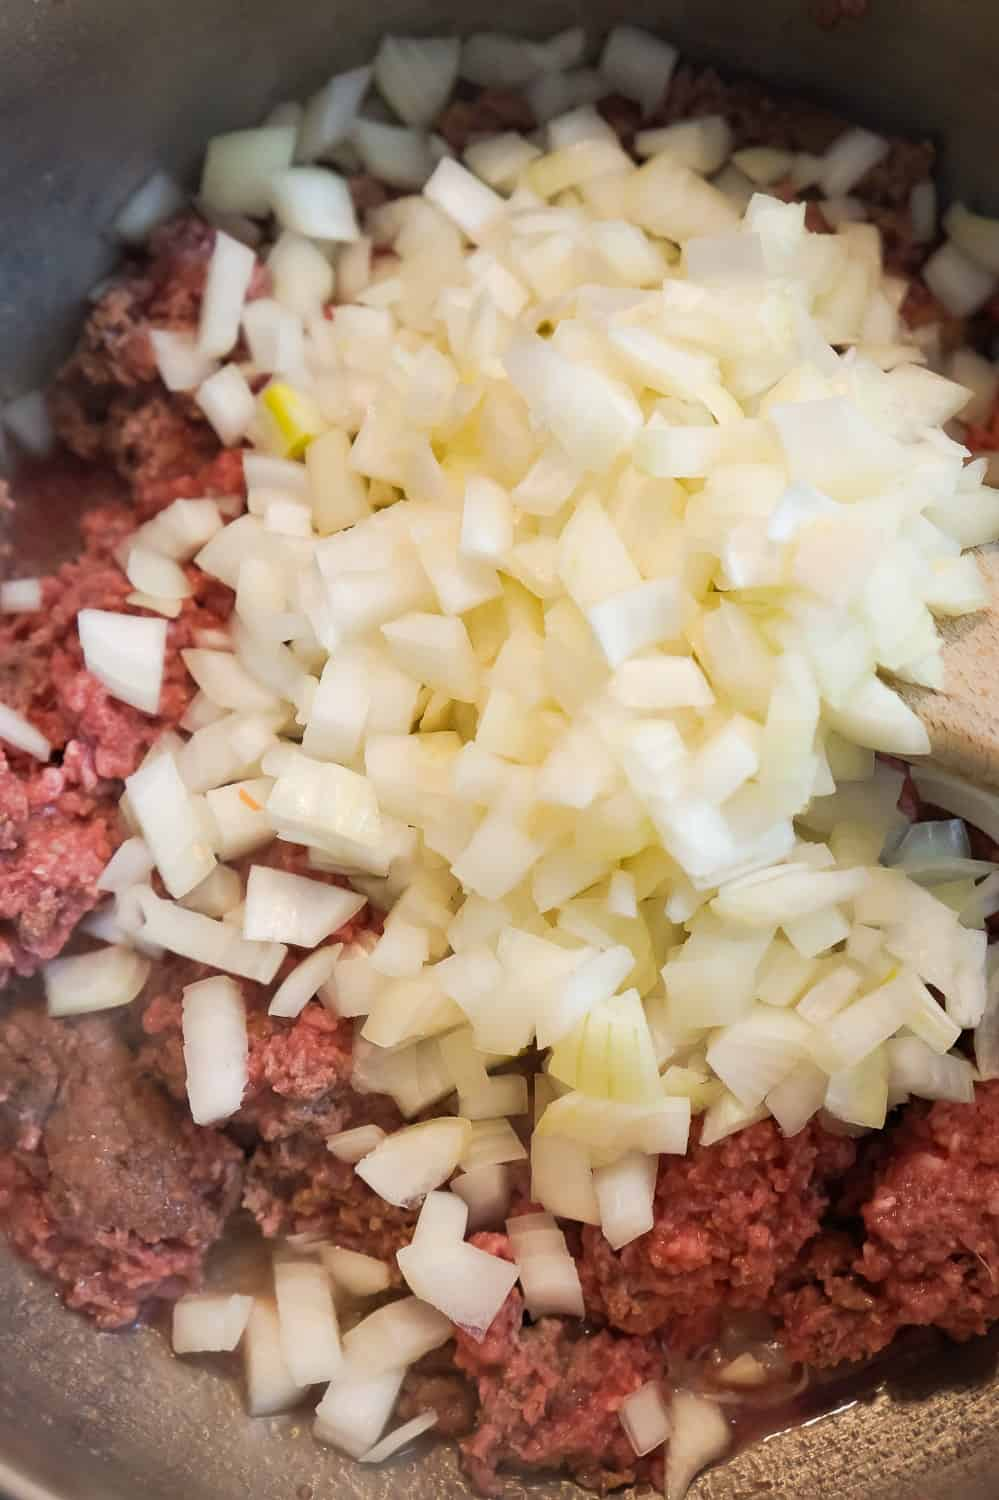 diced onions and ground beef cooking in a pan